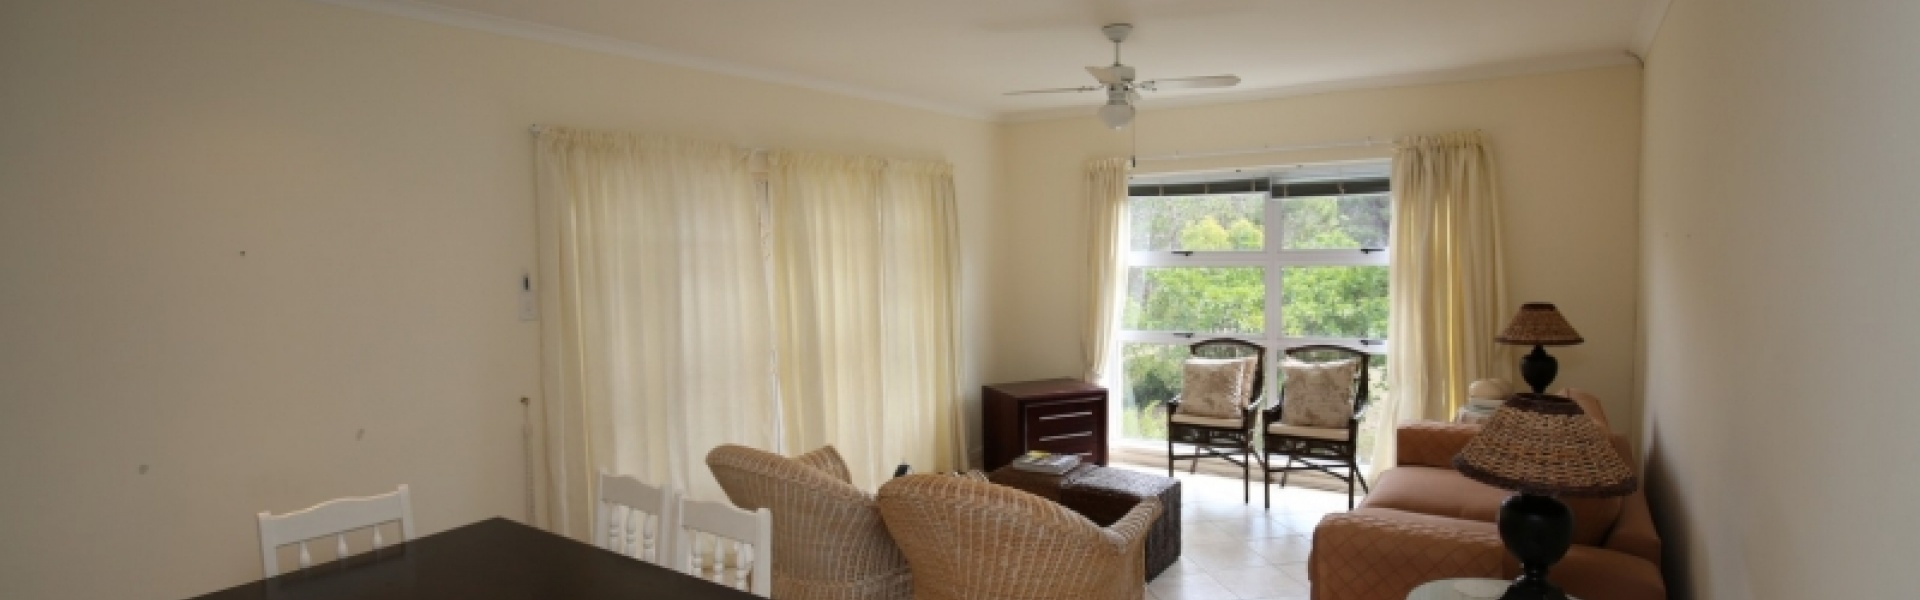 Apartment,For Sale,1034